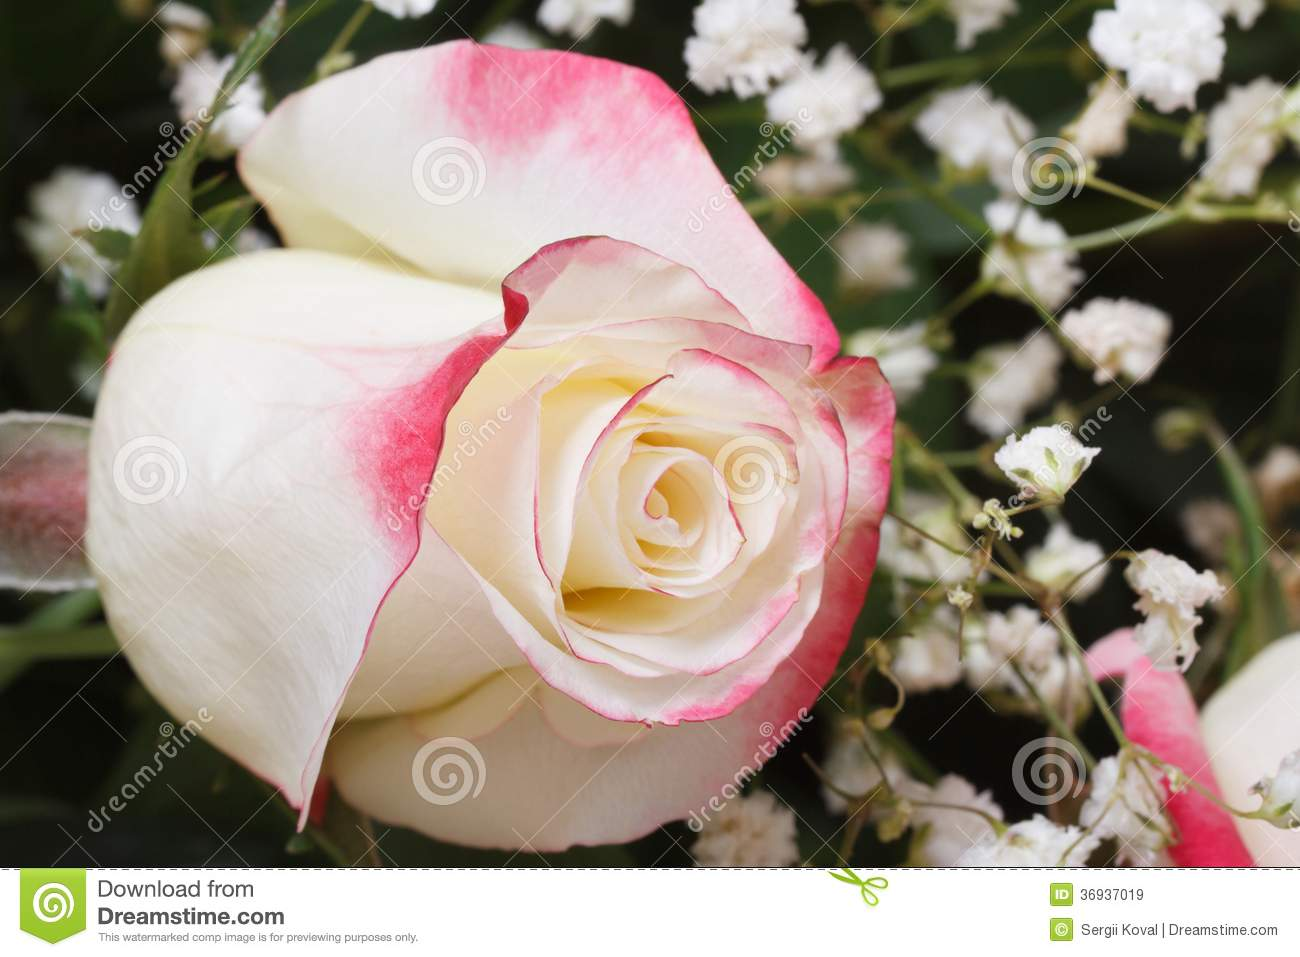 White Rose With Pink Edges Of The Petals With Gypsophila Stock Image